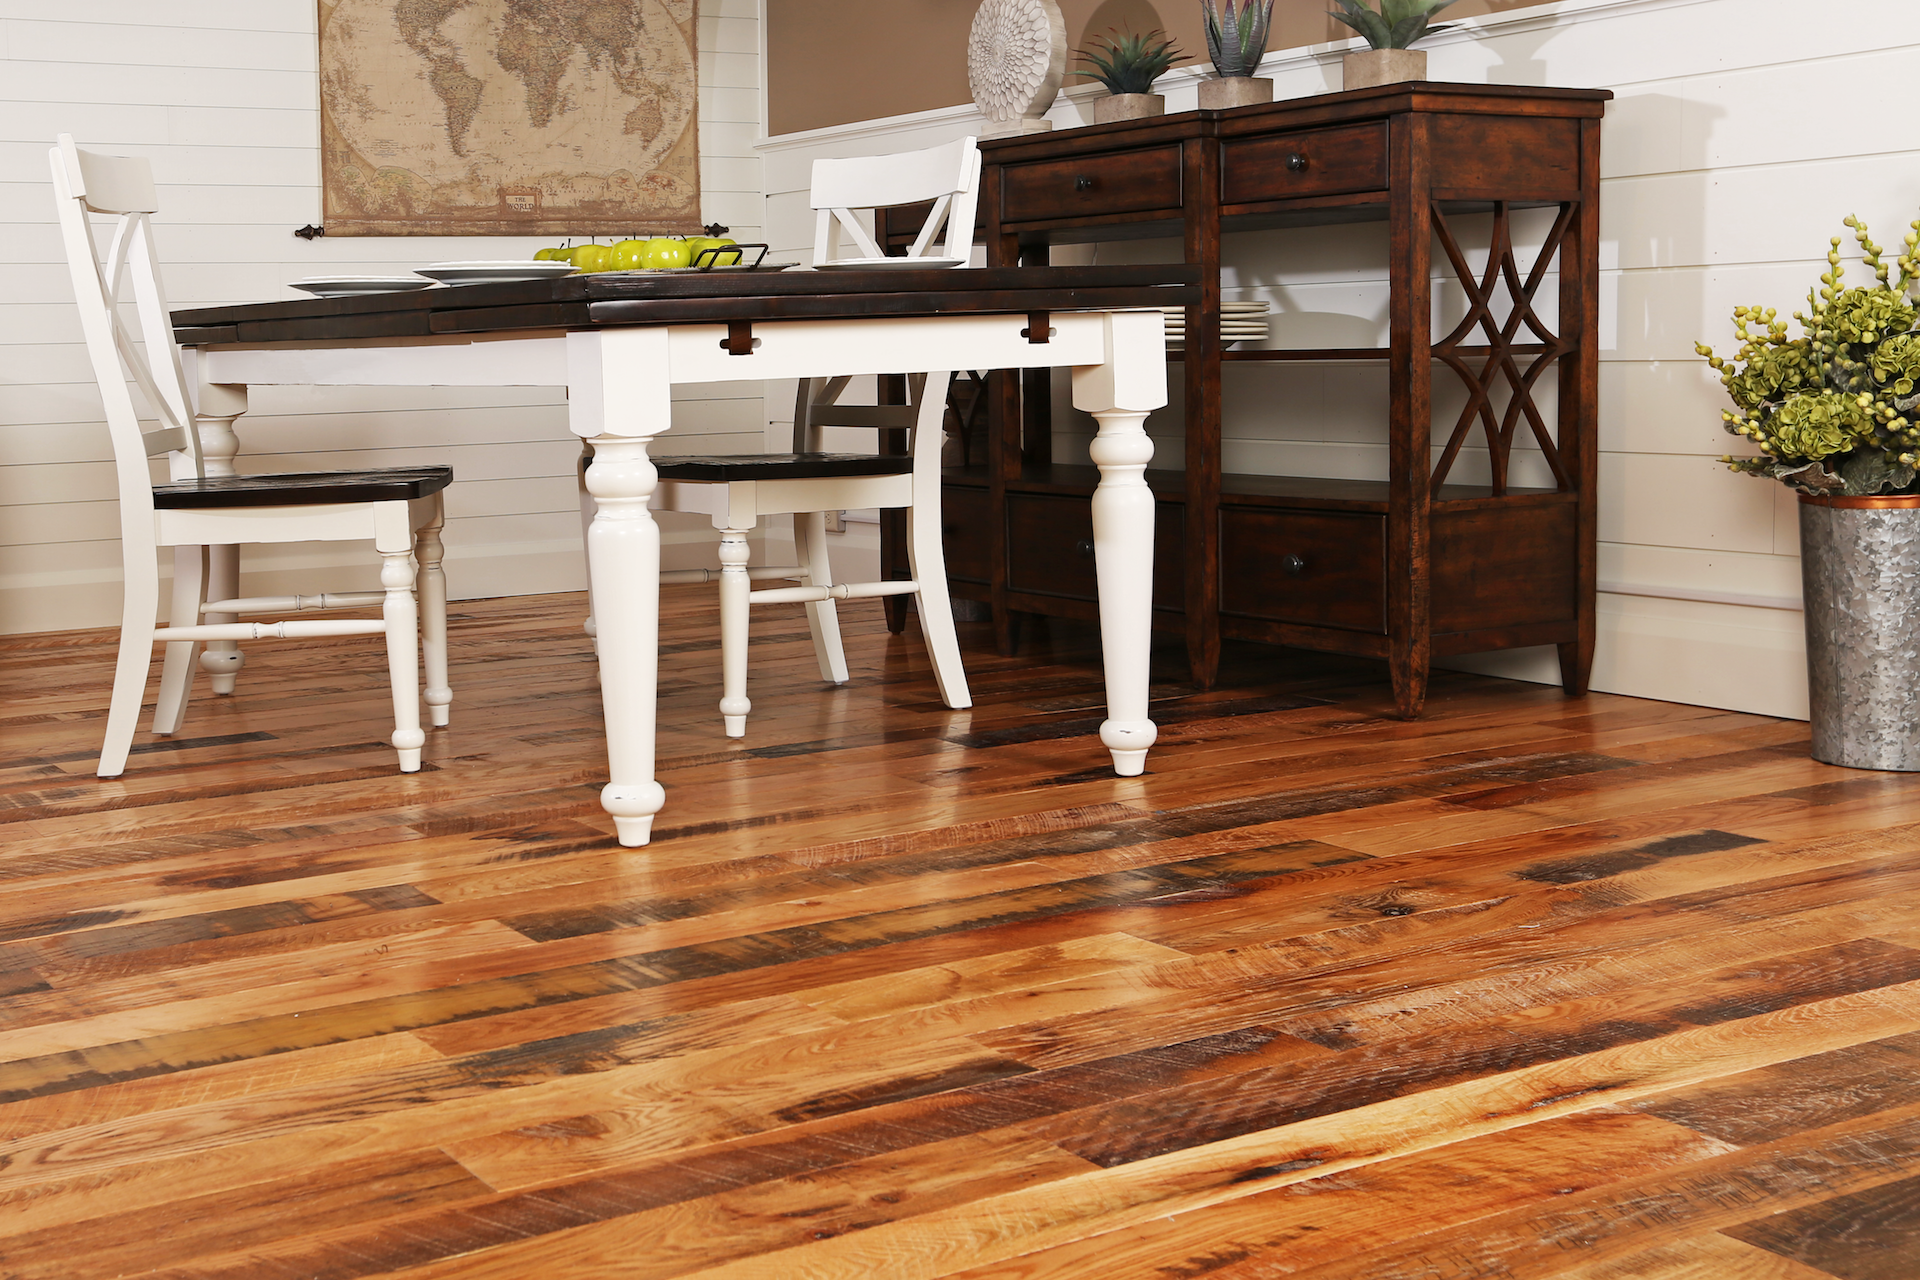 Get The Best Of Both Worlds New Quality Hardwood Floors Antique Style Only With Baird Bro Installing Hardwood Floors Wood Floors Wide Plank Hardwood Floors